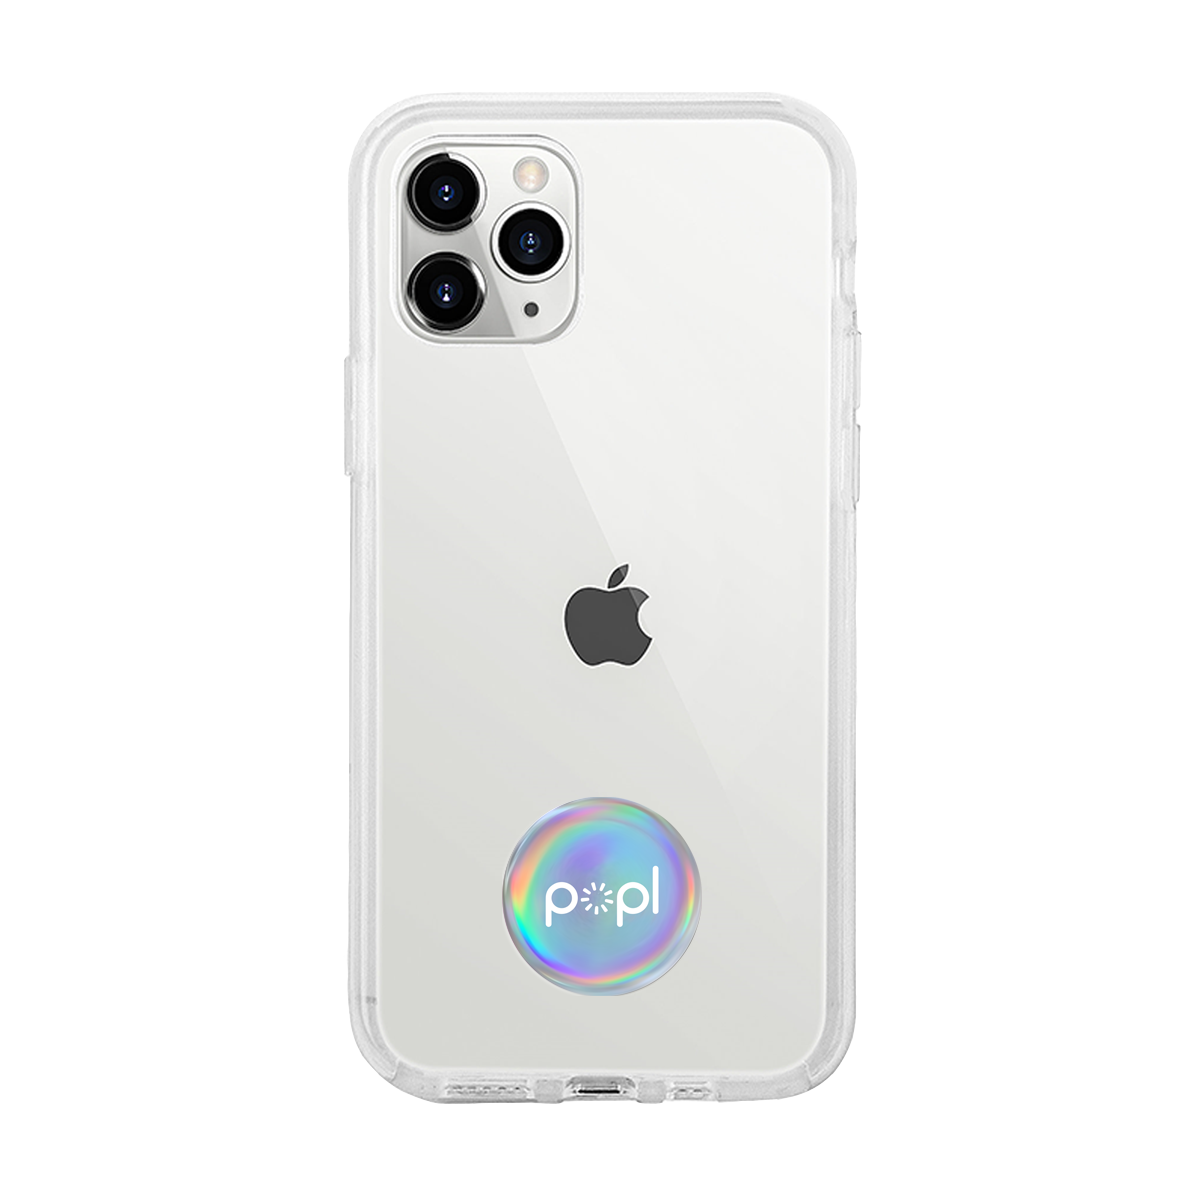 Product_holographic_rendering_1024x1024@2x.png